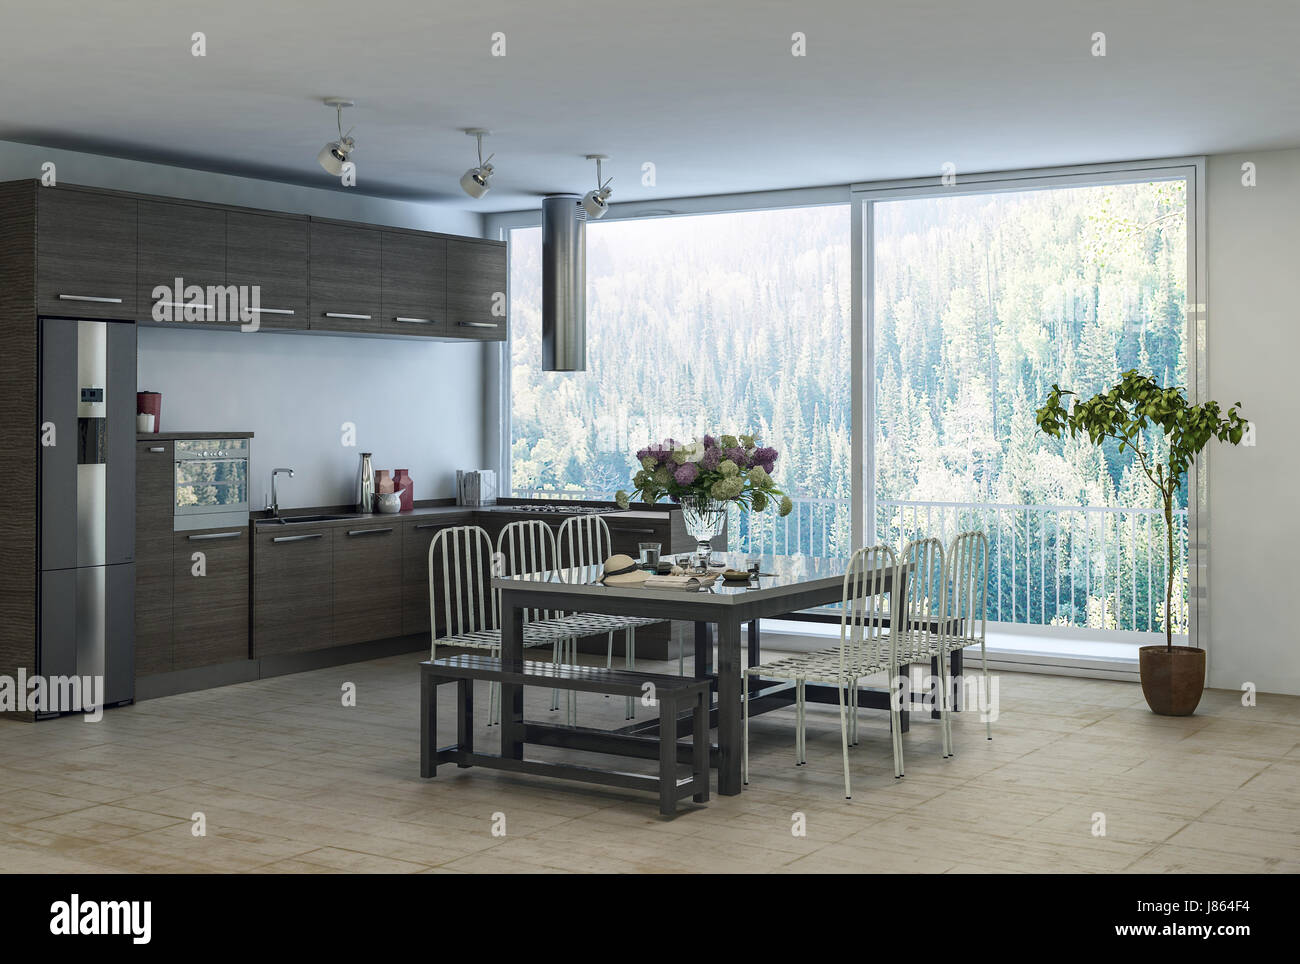 Modern trendy dining kitchen area in an apartment with built in cabinets and appliances along the wall and table Stock Photo